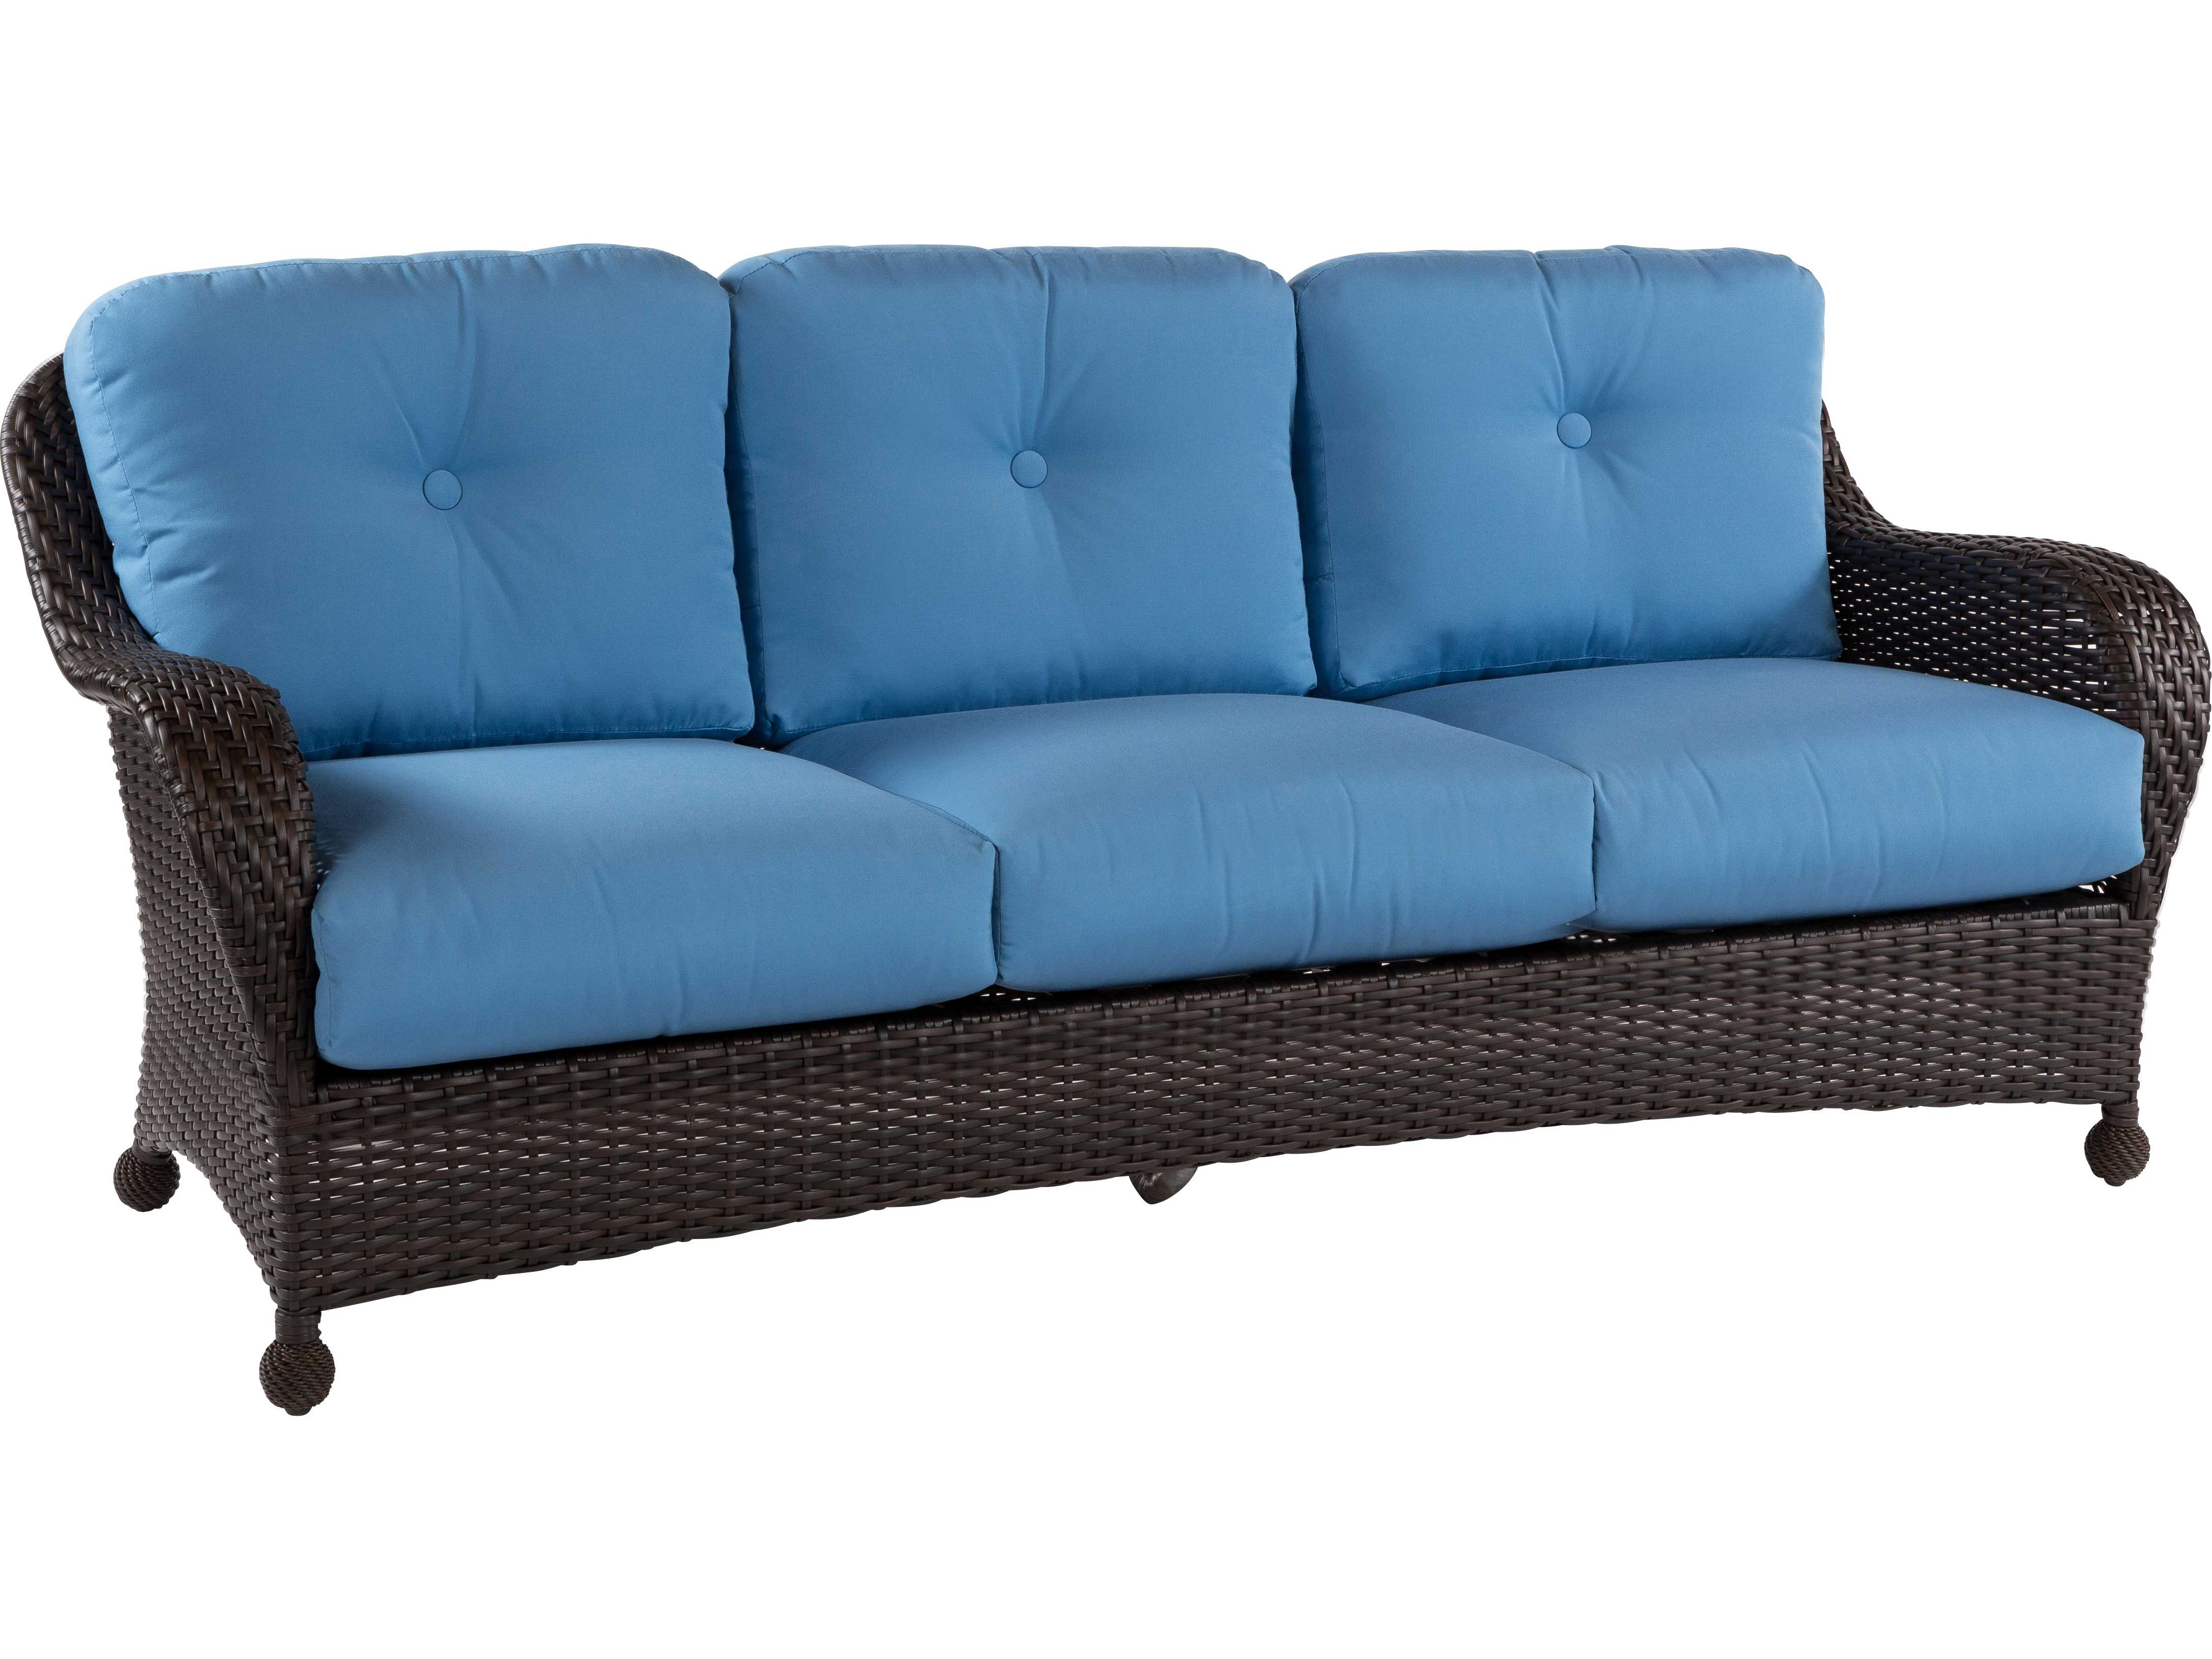 Windward Design Group Carolina Wicker Deep Seating Aluminum Sofa